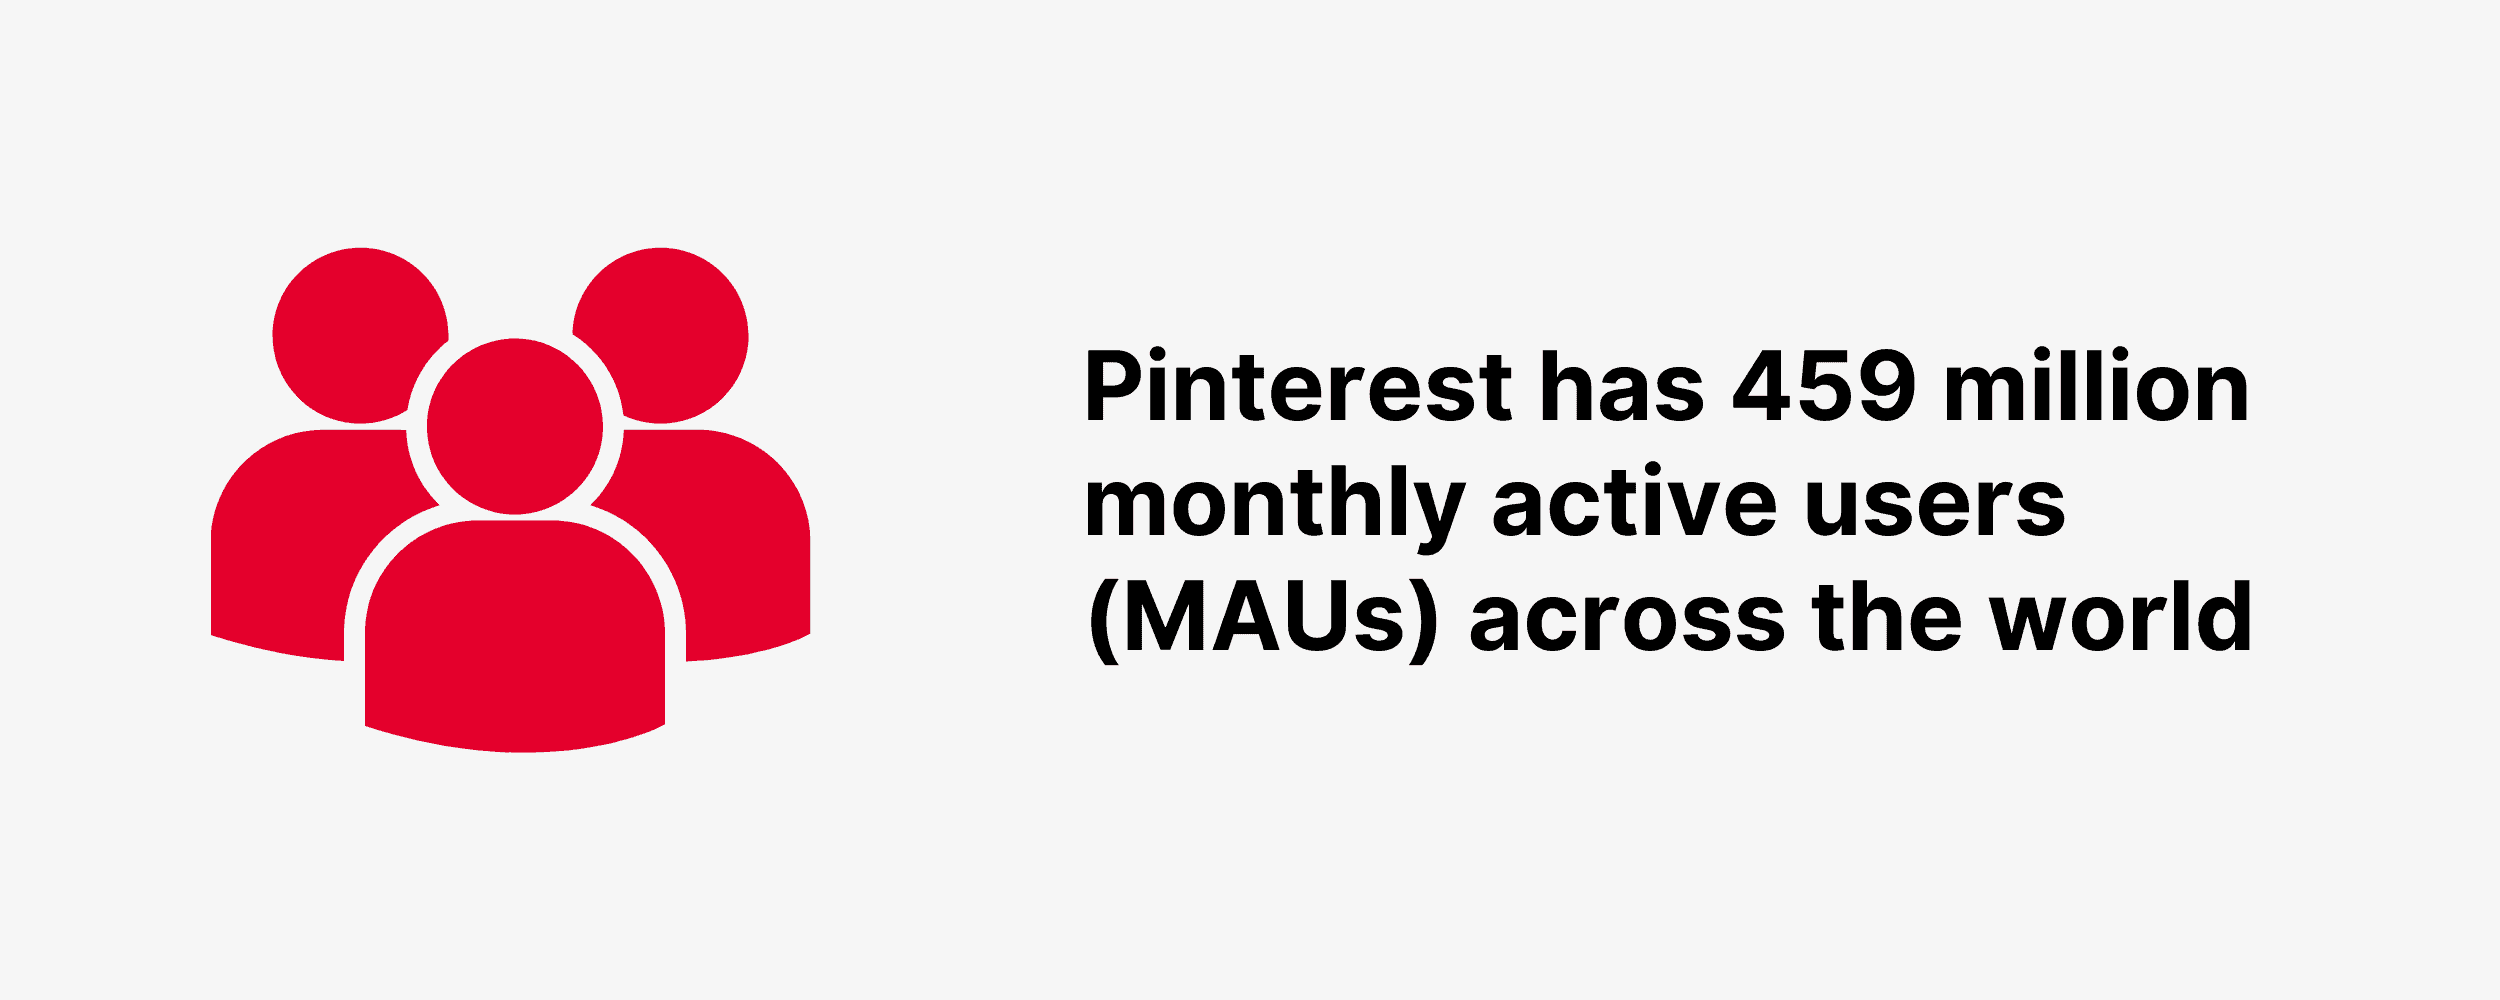 Pinterest has 459 million monthly active users (MAUs) across the world